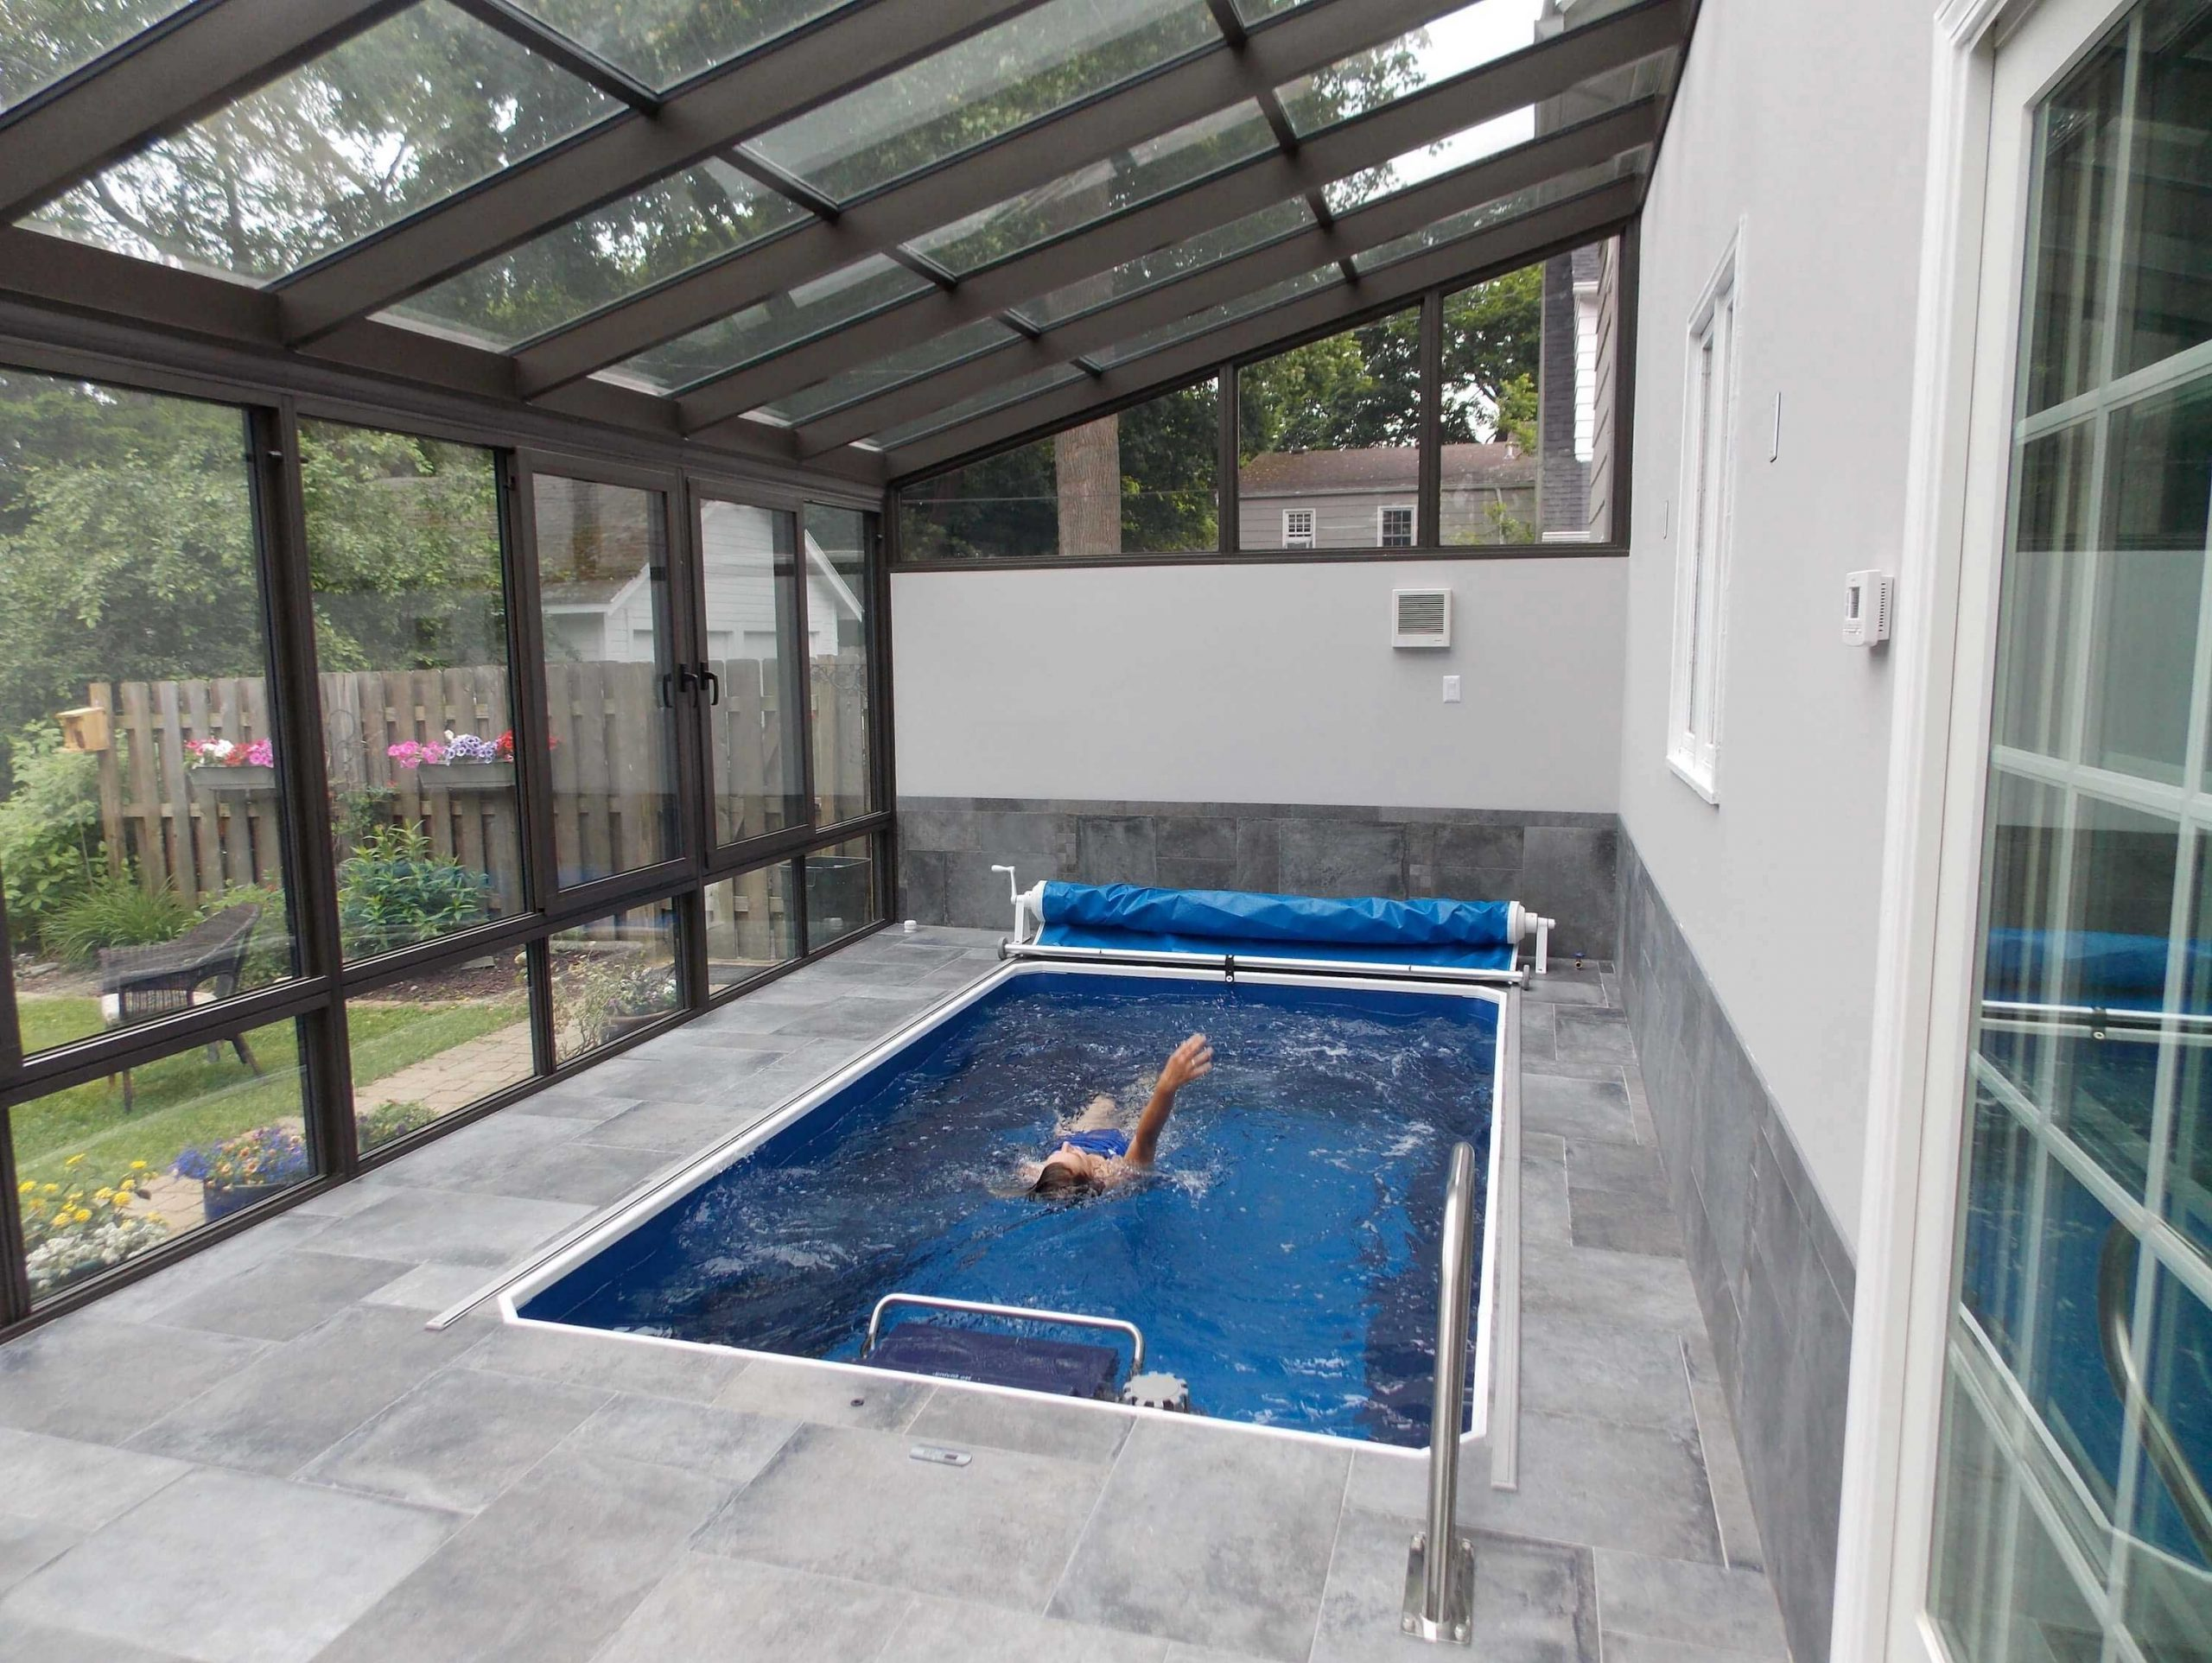 Rectangular Above Ground Swimming Pools Ideas To Decorate Your Backyard | Roy Home Design